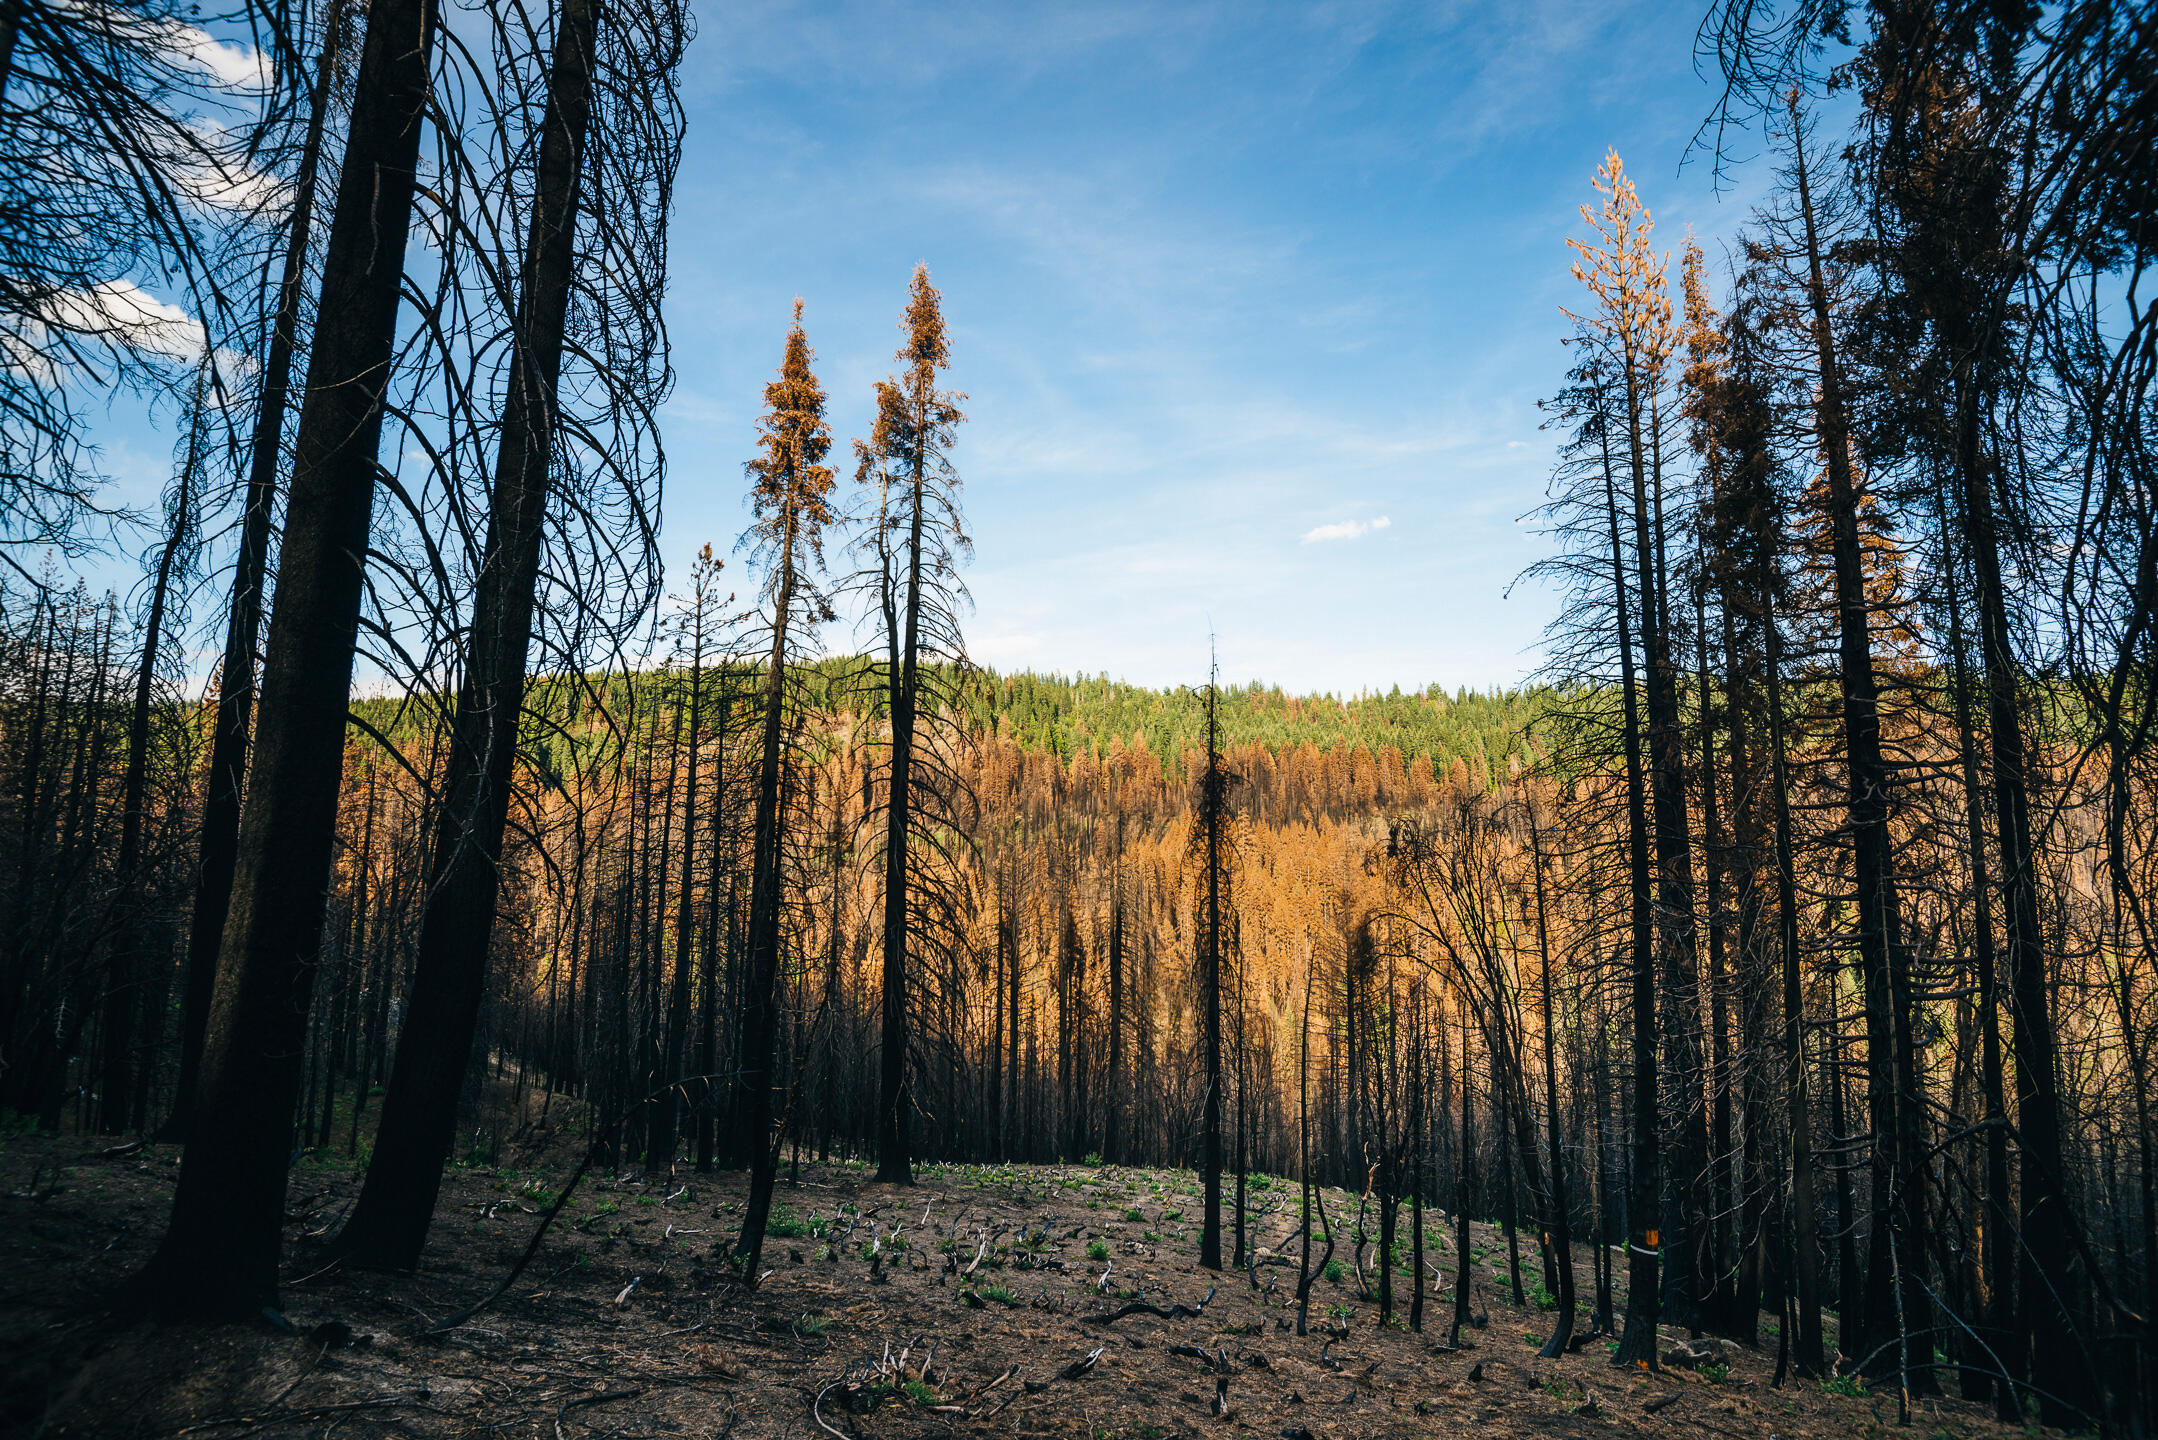 Looking south on the Stanislaus National Forest, a gradient of burn severity is visible. The silhouette of the scorched foreground contrasts with the high to low severity on the north-facing slope in the distance. Ken Etzel